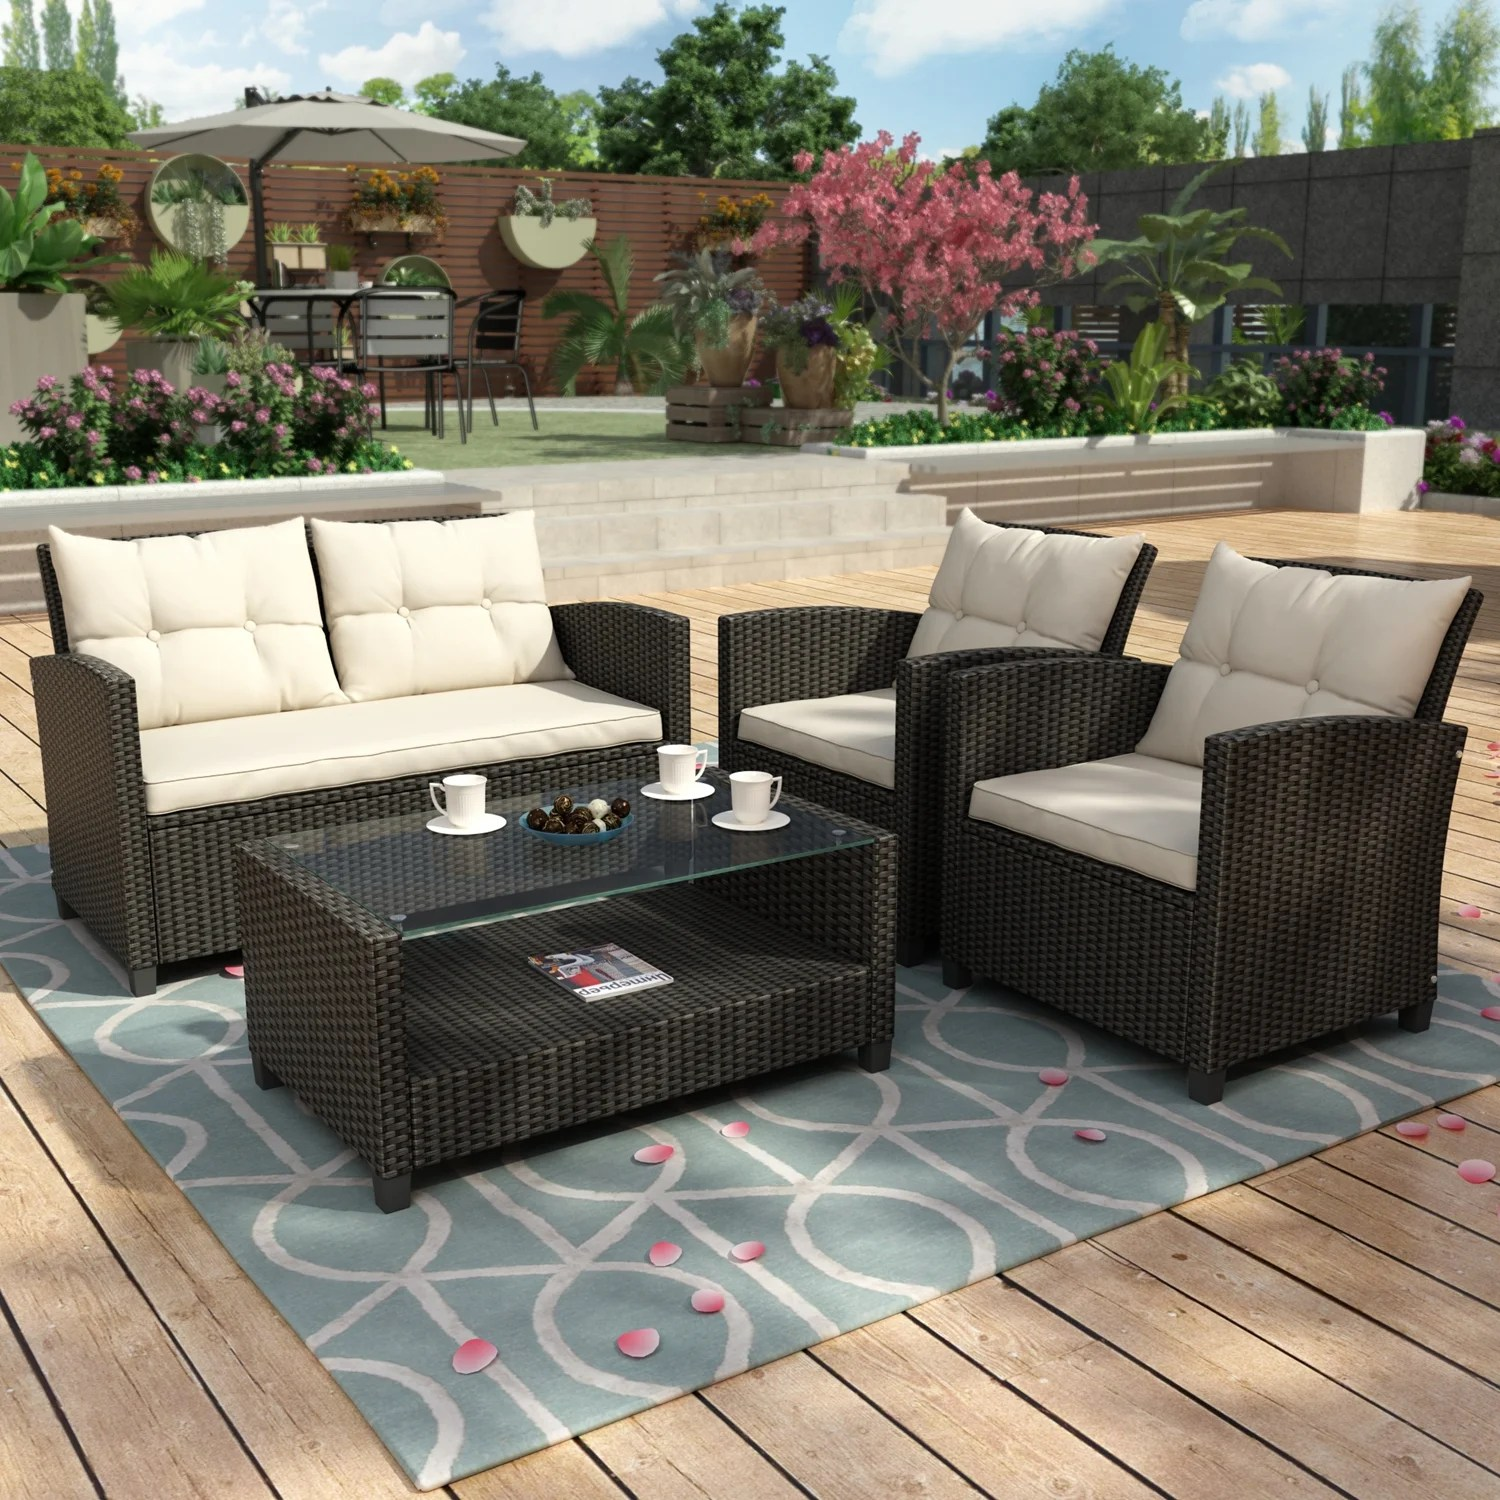 4 pieces patio furniture rattan patio conversation set for patio lawn garden outdoor chair sofa cushions and storage glass table